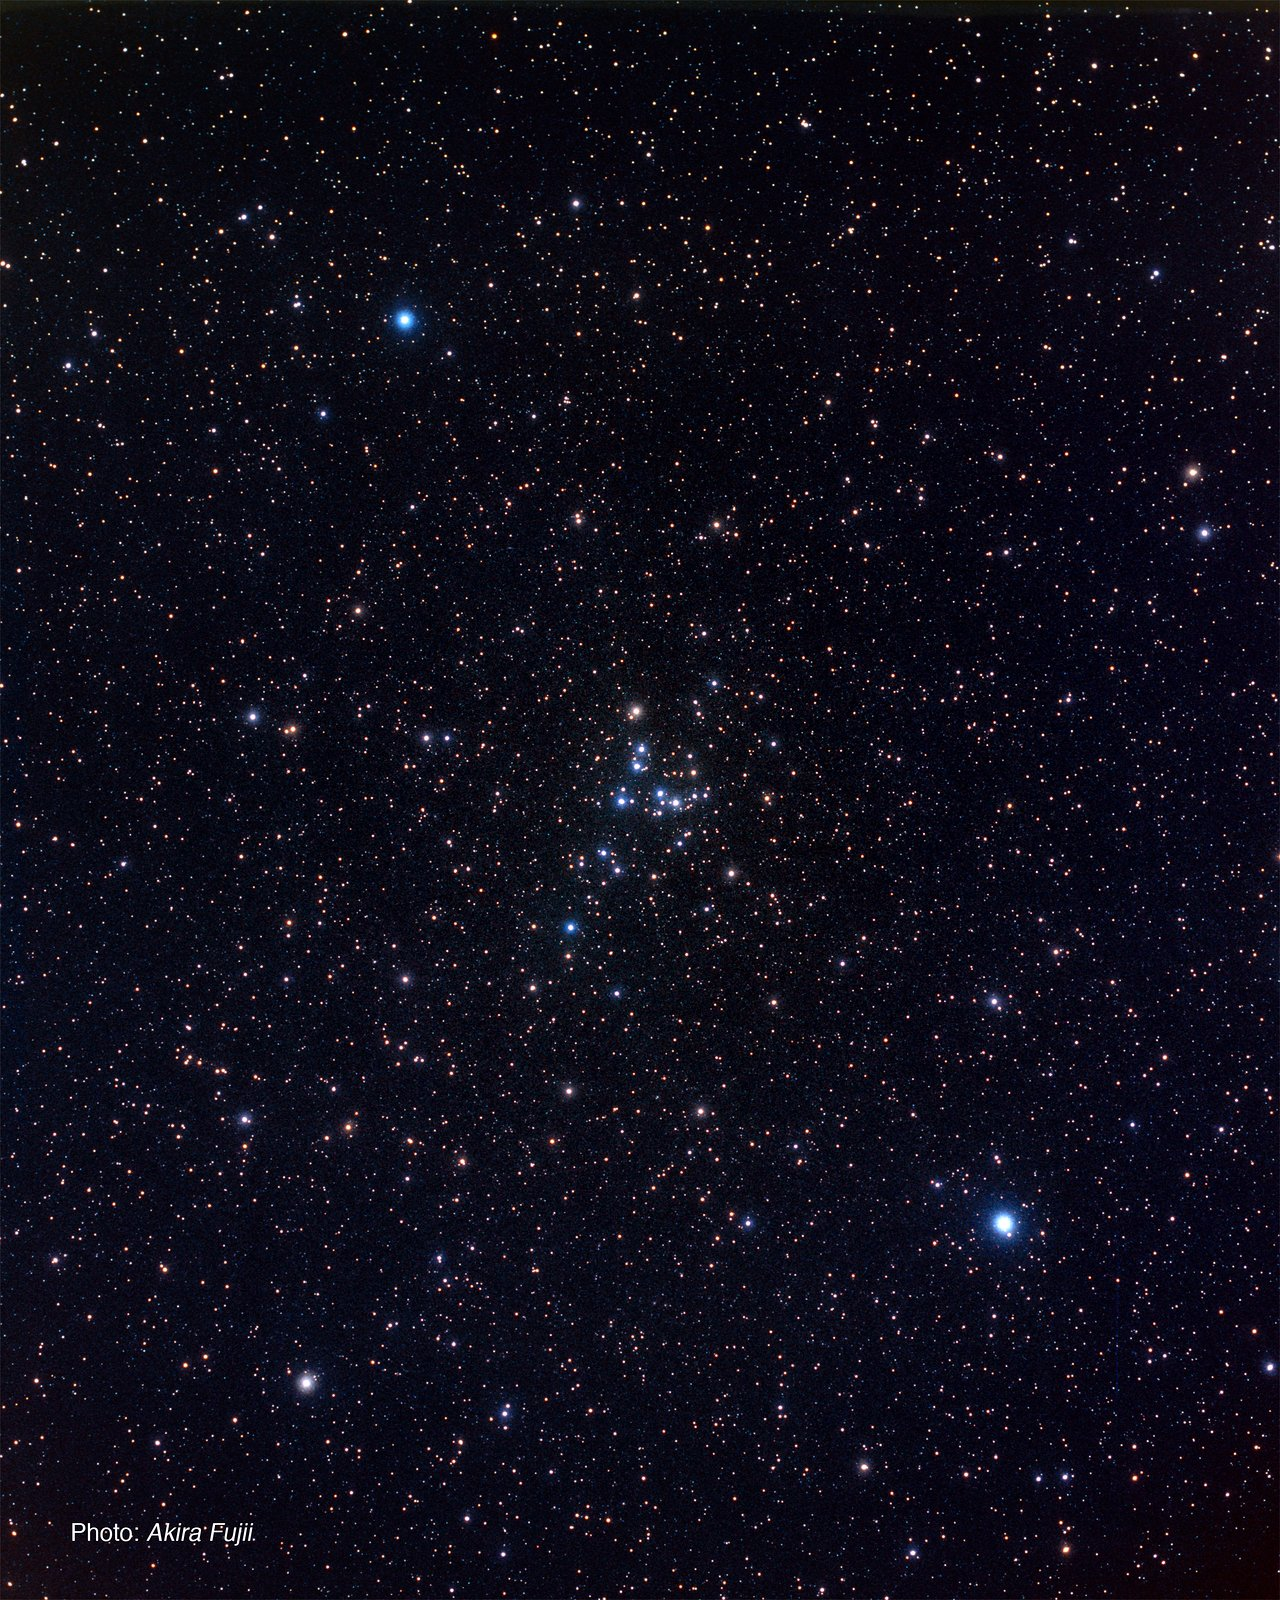 Virgo virgo and other nearby constellations are seen in this ground